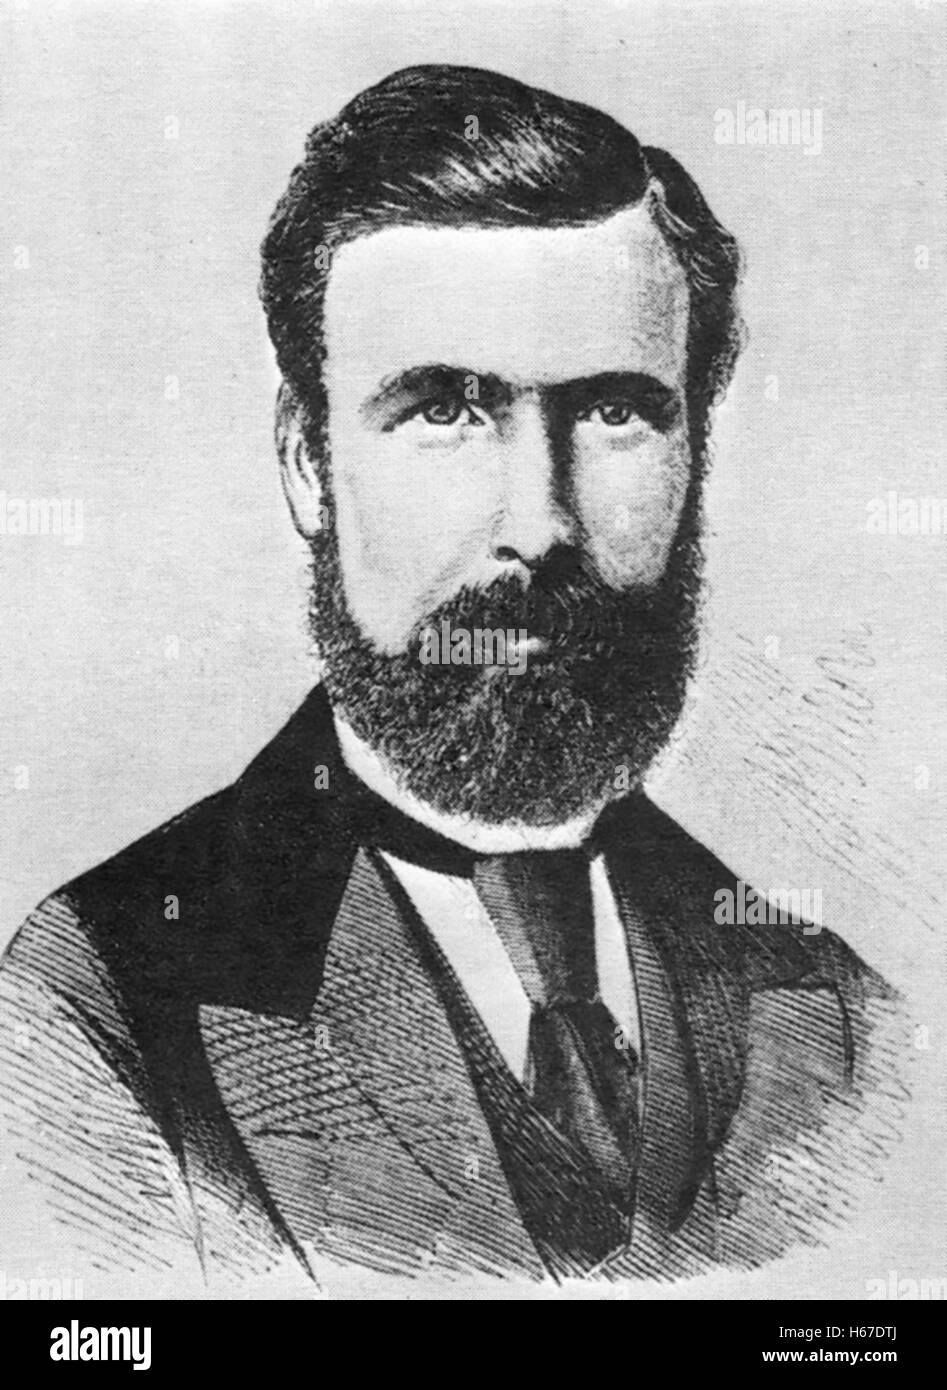 GEORGE POTTER (1832-1893) first President of the British Trades Union Congress - Stock Image